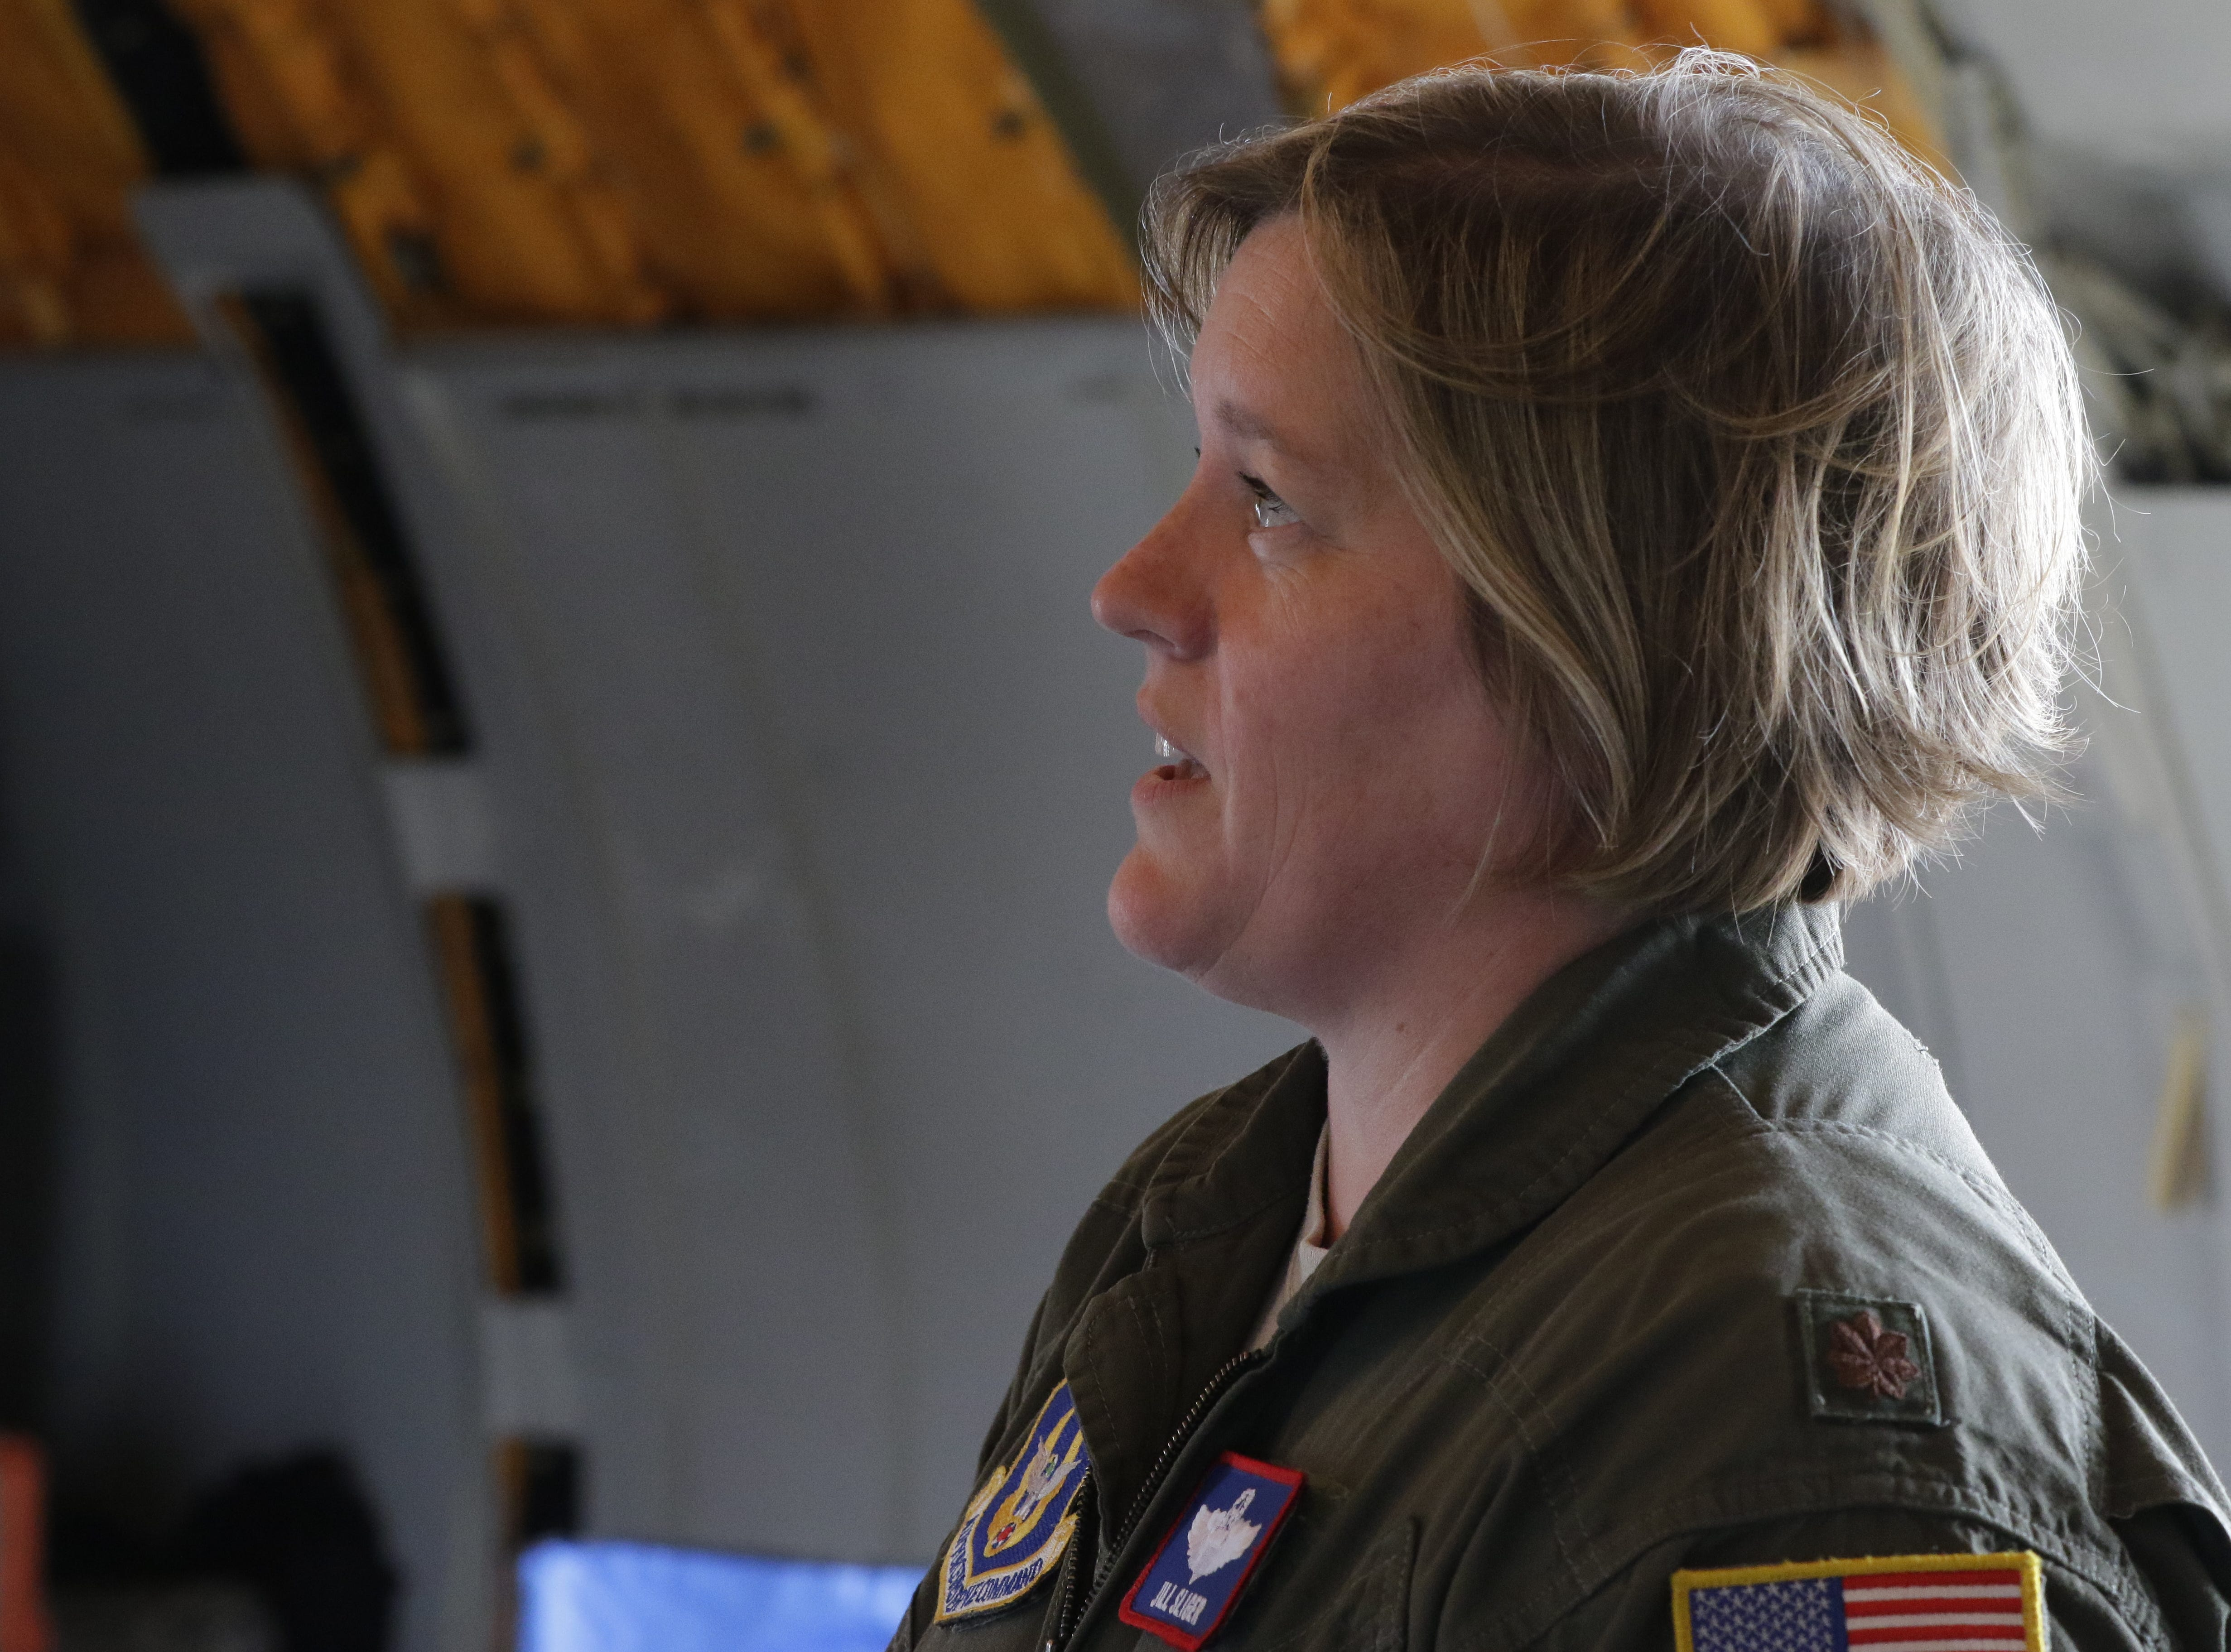 Major Jill Sliger talks about flying the McDonnell Douglas KC-10 Extender the past 2 years, Friday, July 27, 2018, in Oshkosh, Wis.  The 66th annual Experimental Aircraft Association Fly-In Convention, AirVenture 2018 draws over 500,000 people and over 10,000 planes from more than 70 nations annually to the area.  The convention runs through July 29.Joe Sienkiewicz/USA Today NETWORK-Wisconsin